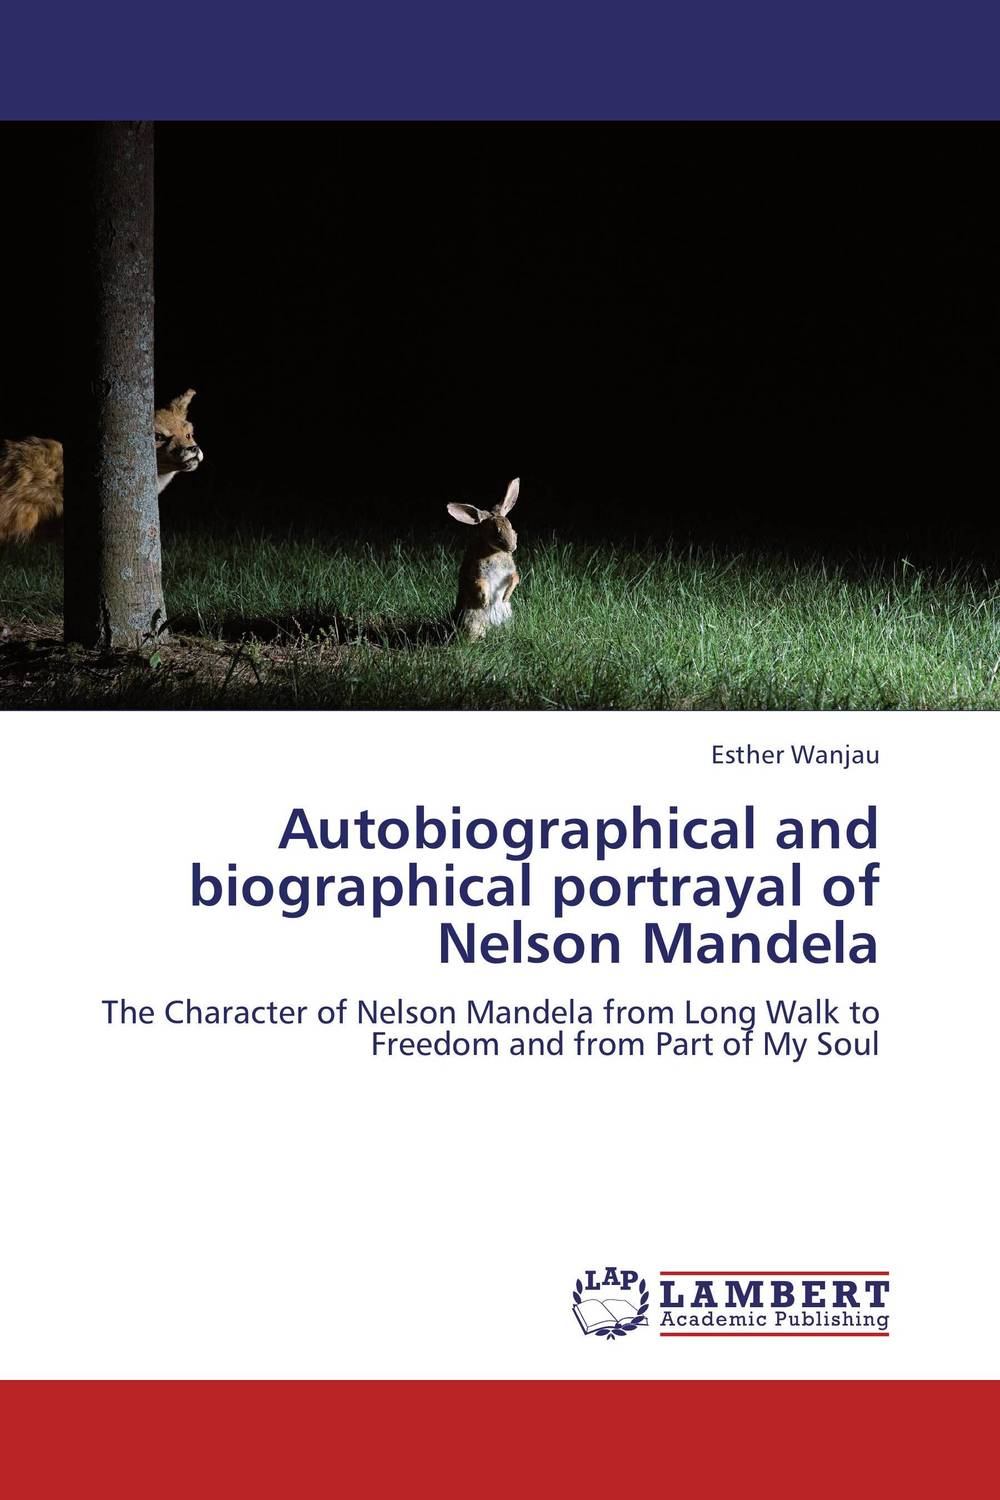 Autobiographical and biographical portrayal of Nelson Mandela